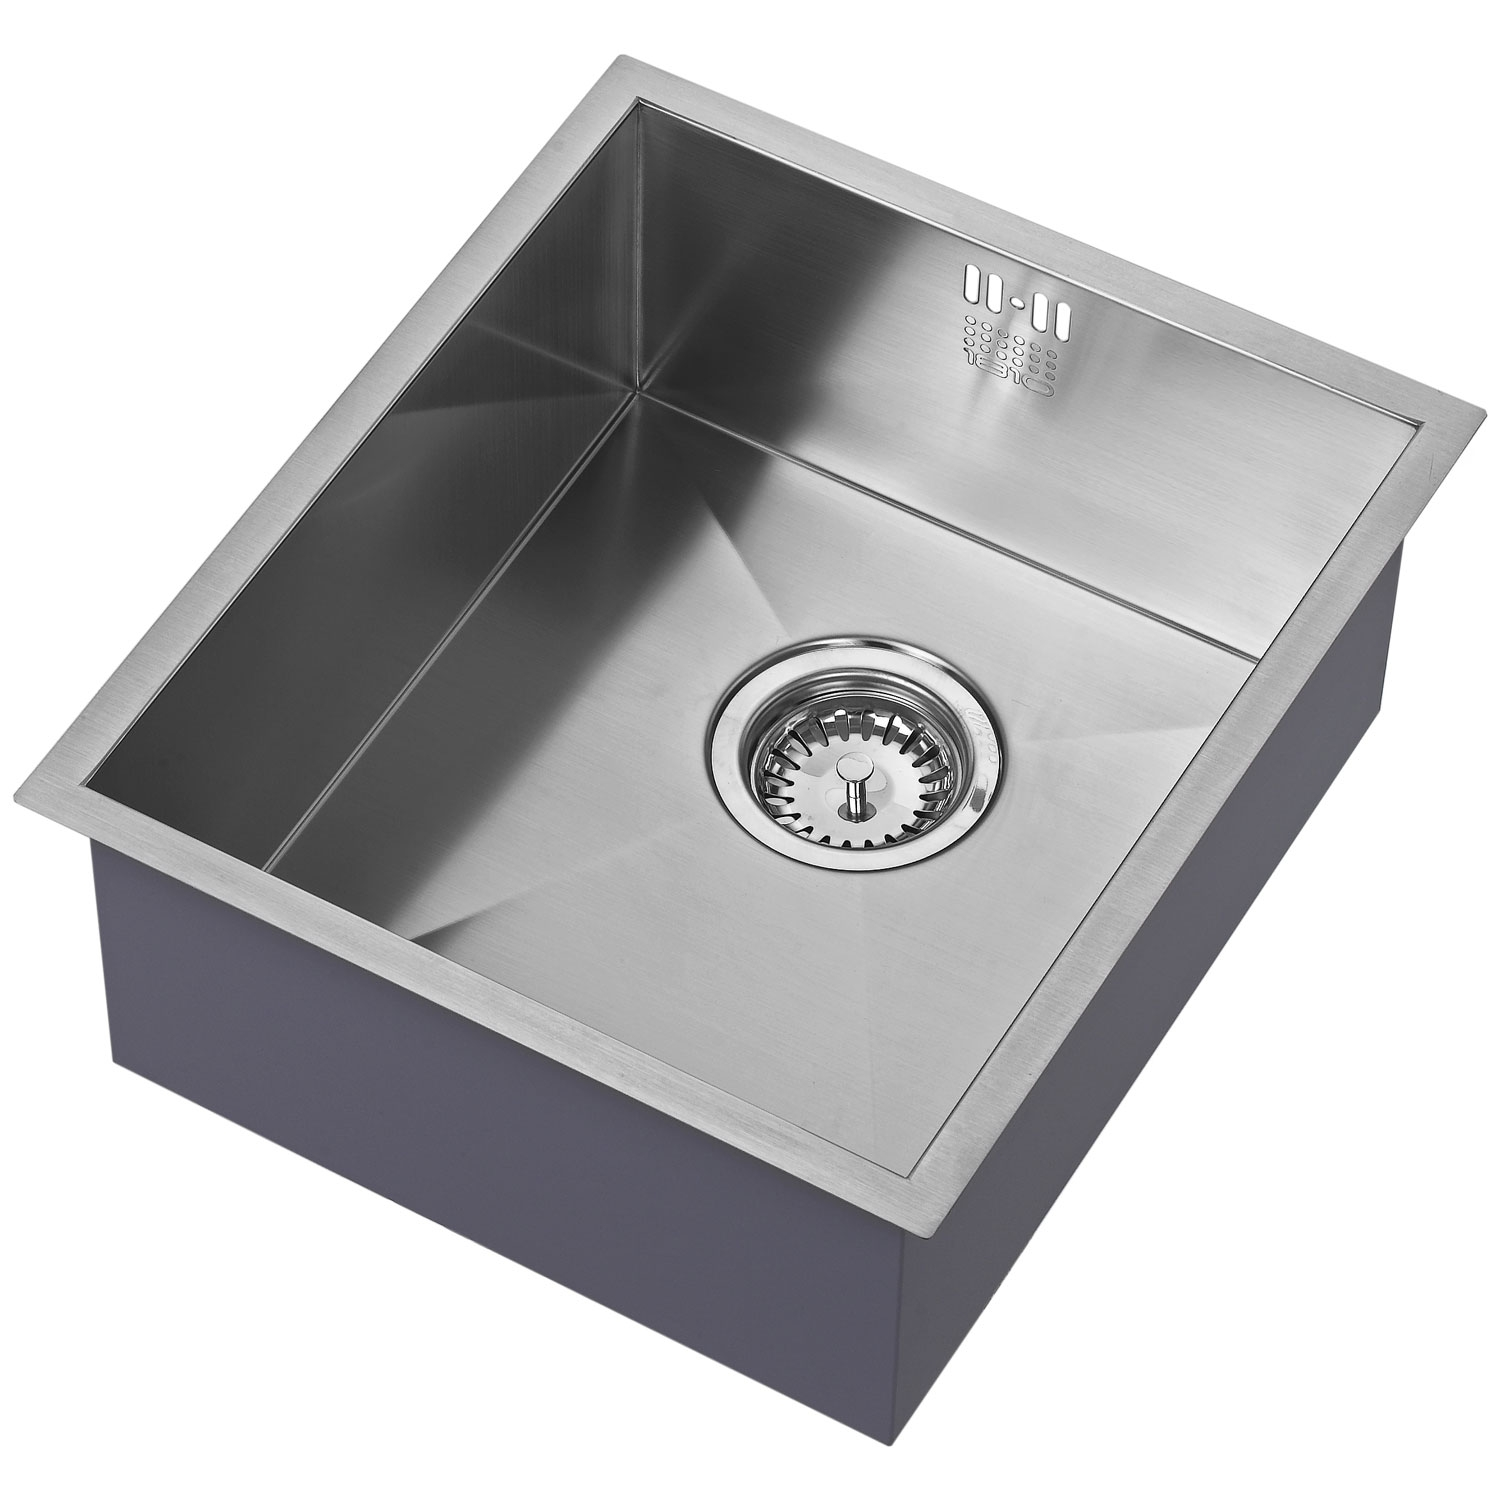 The 1810 Company Zenuno 340U 1.0 Bowl Kitchen Sink - Stainless Steel